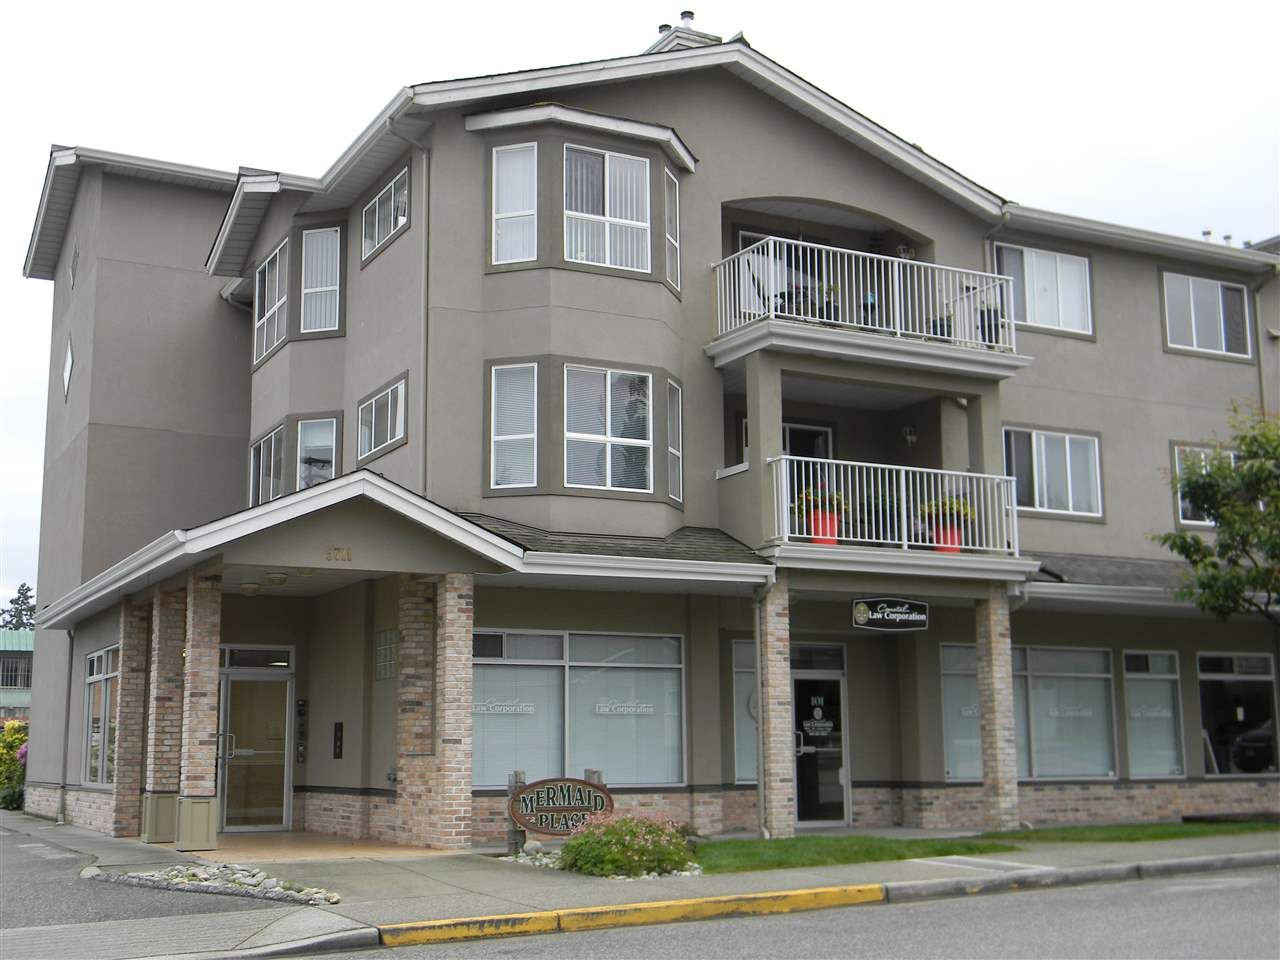 Great location in Sechelt - short walk to the beach, quiet street off the main arteries but still close to everything.  Parking is outdoors if you have a vehicle and  buses are close too!